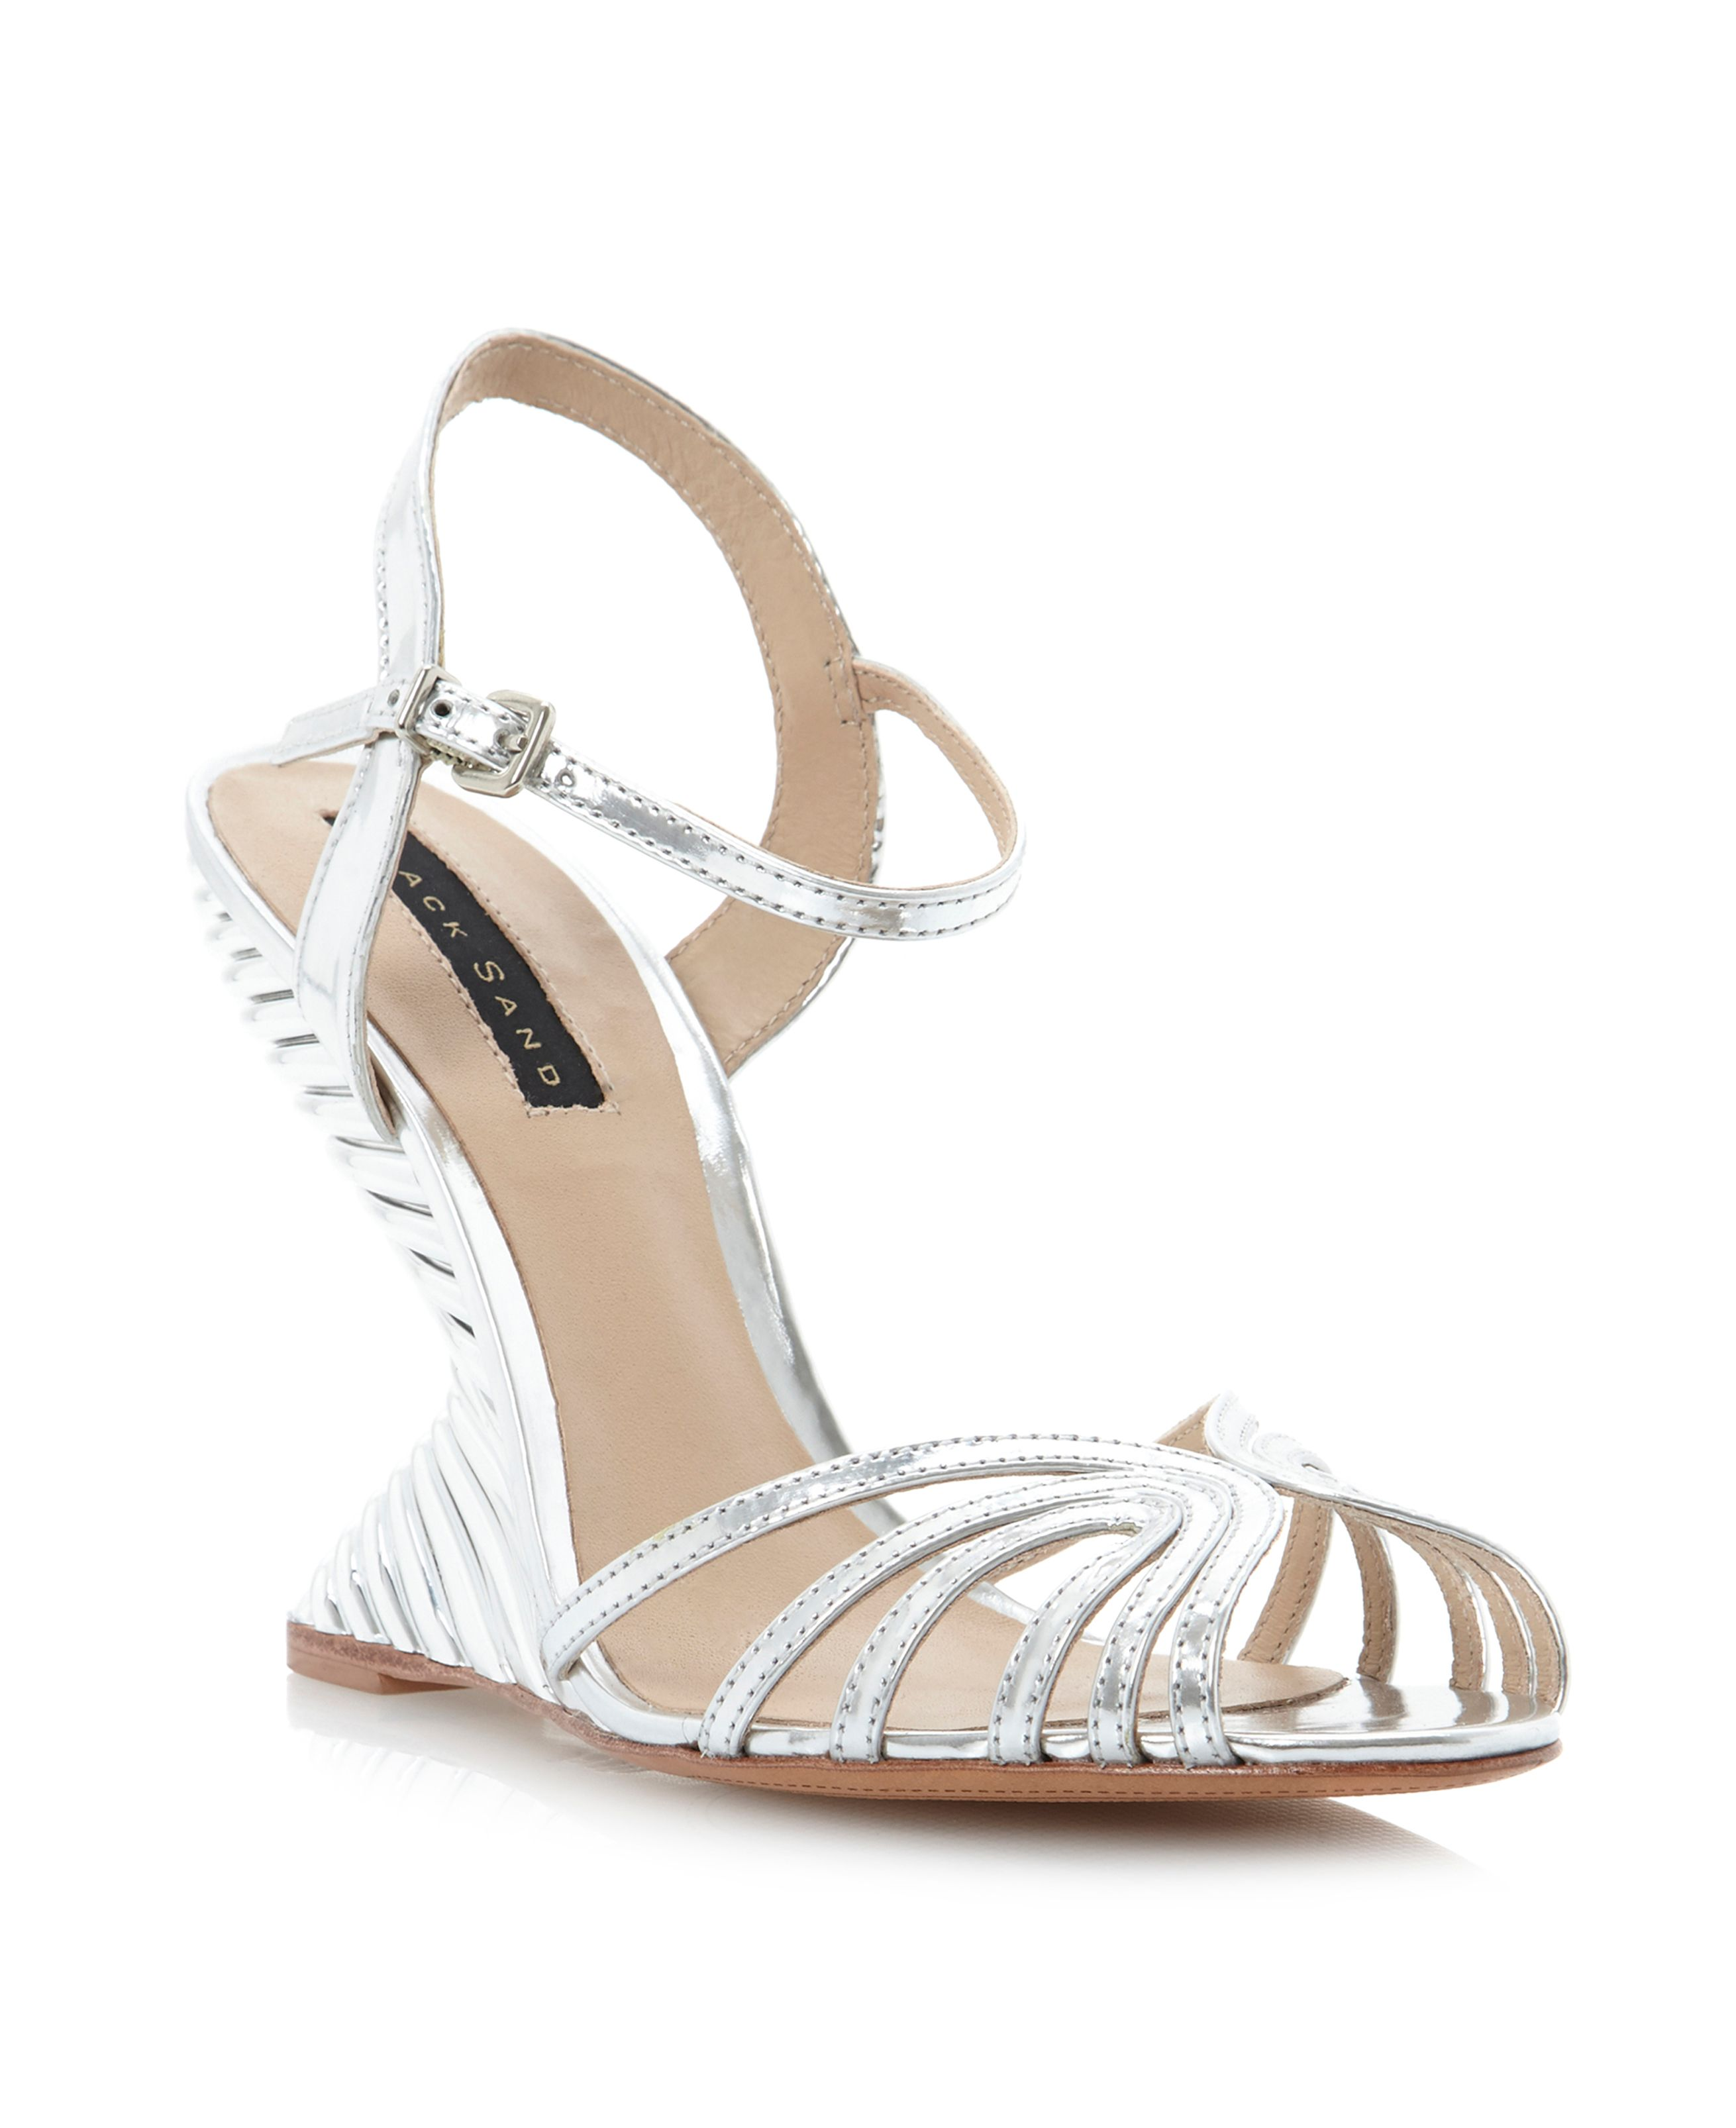 Babes metallic teared wedge sandals